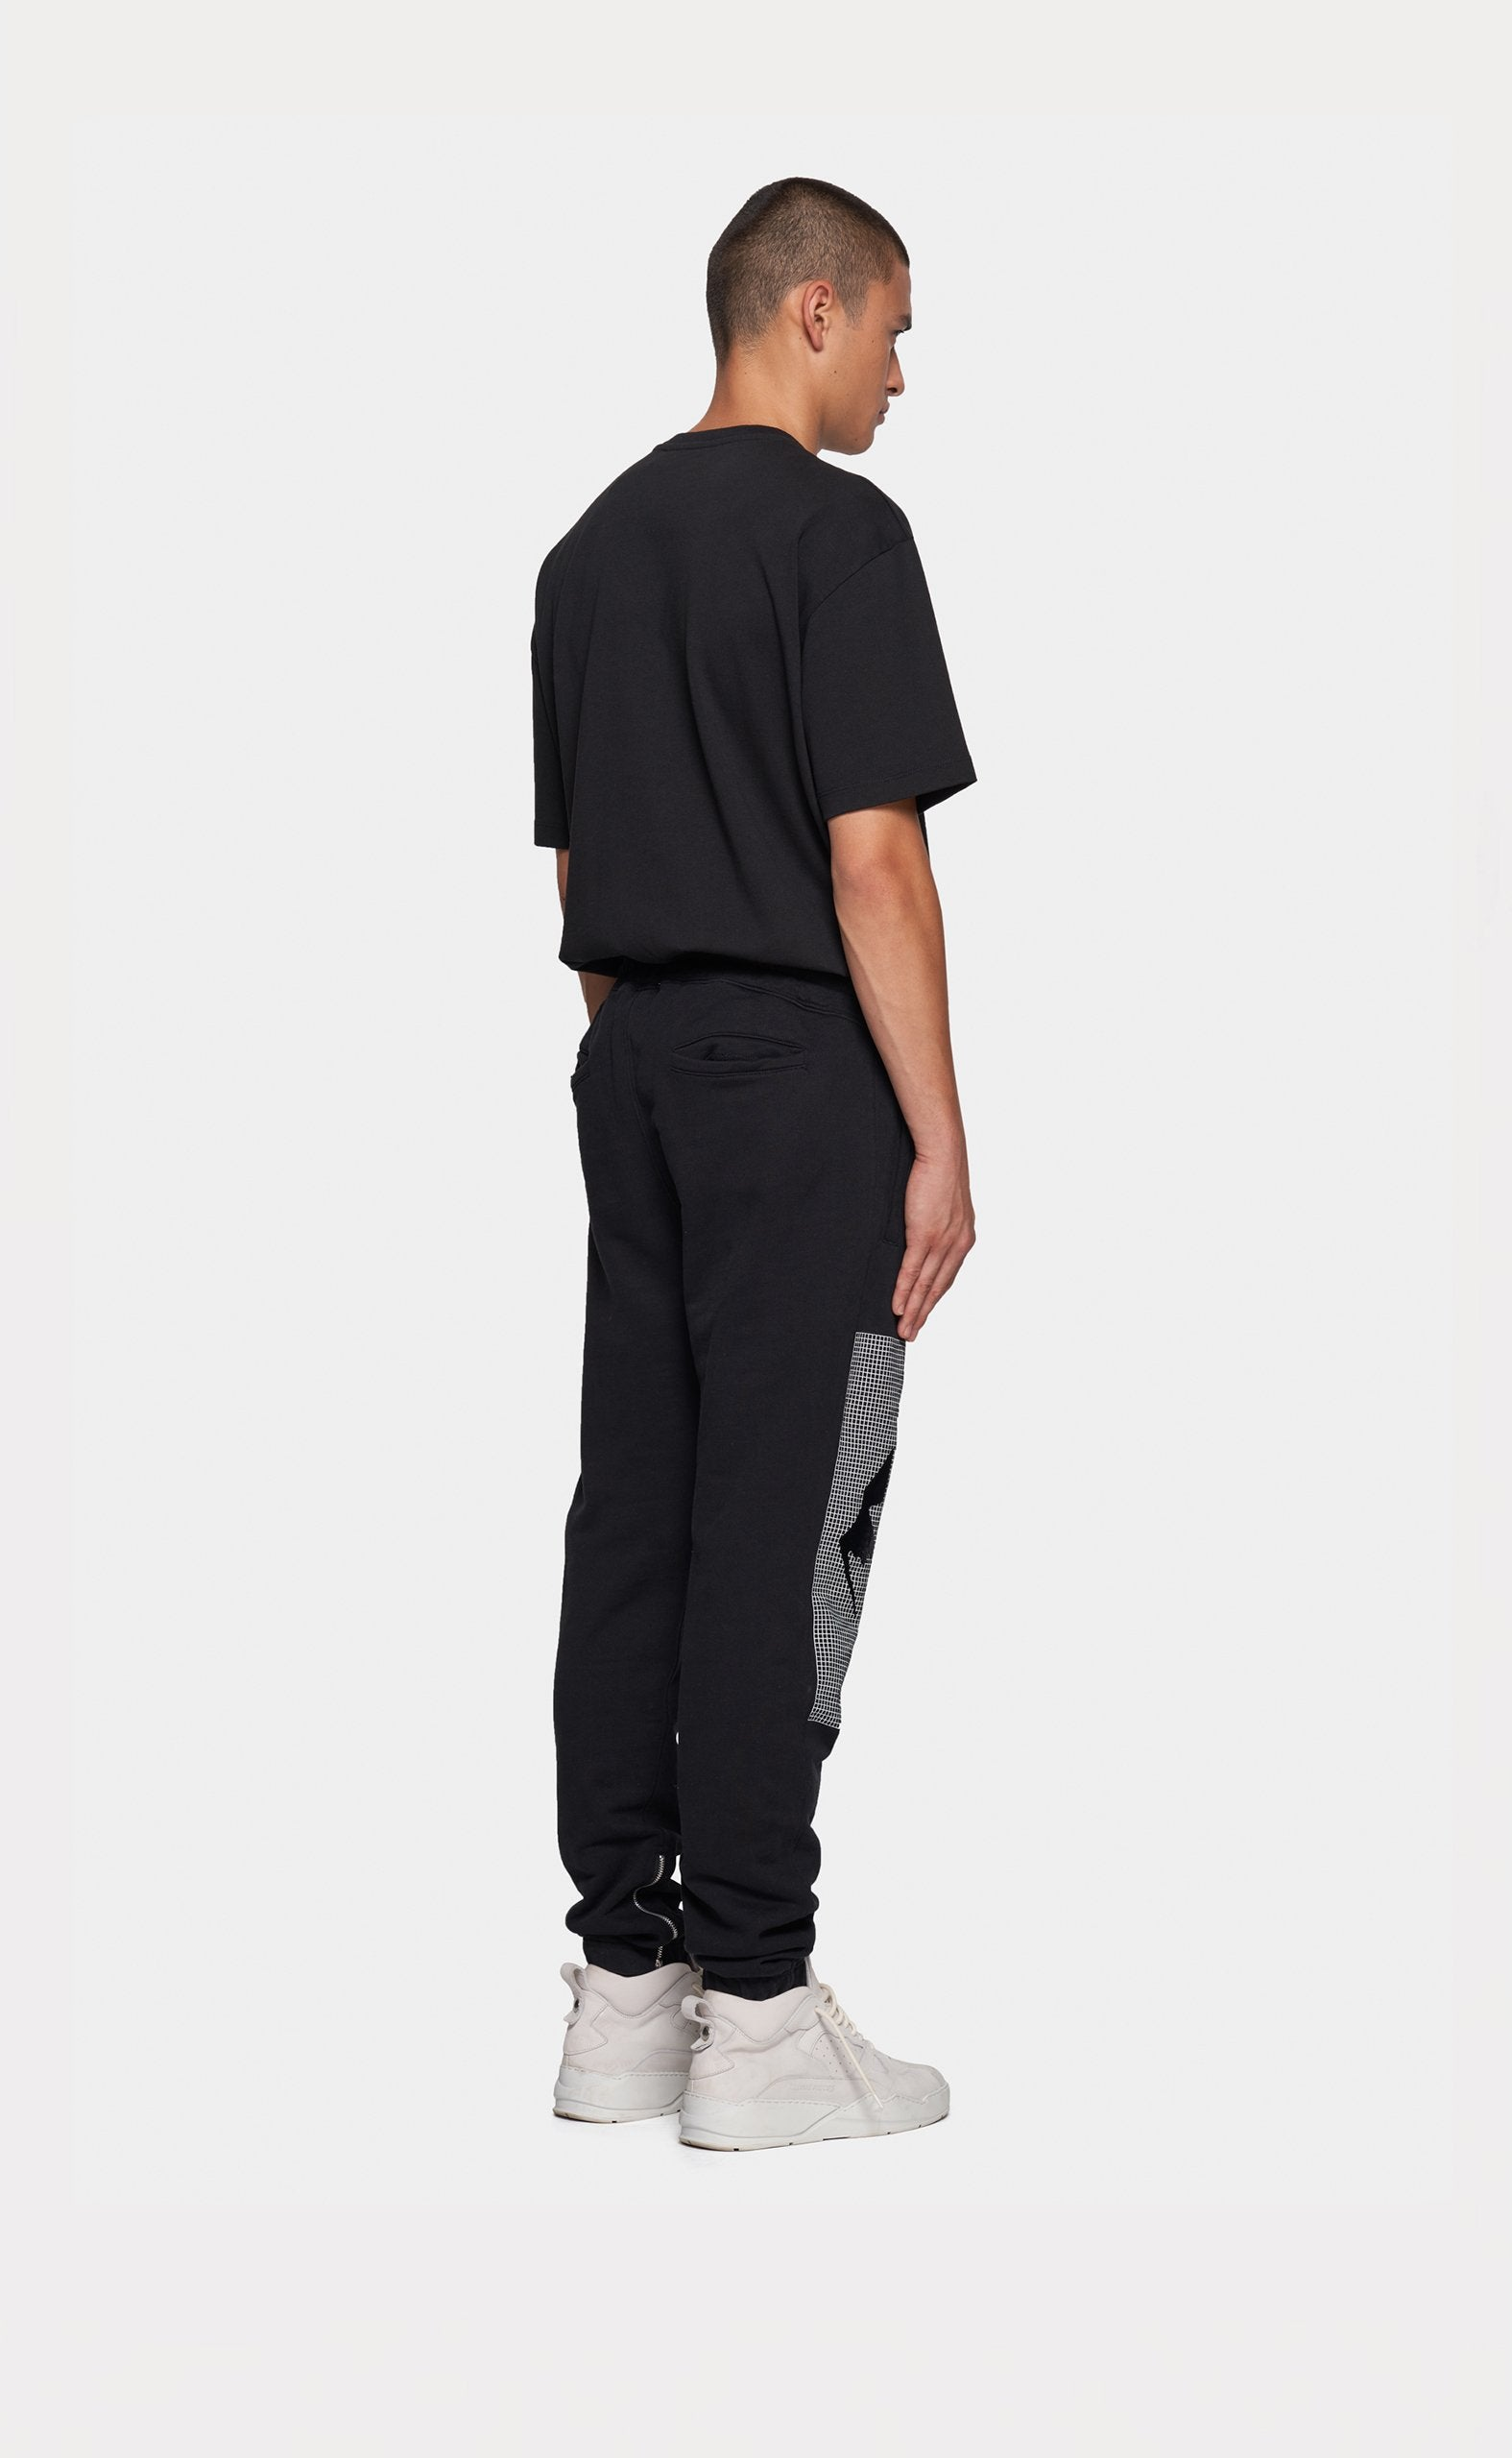 Graphic Sweatpants Black - Mountain Grid